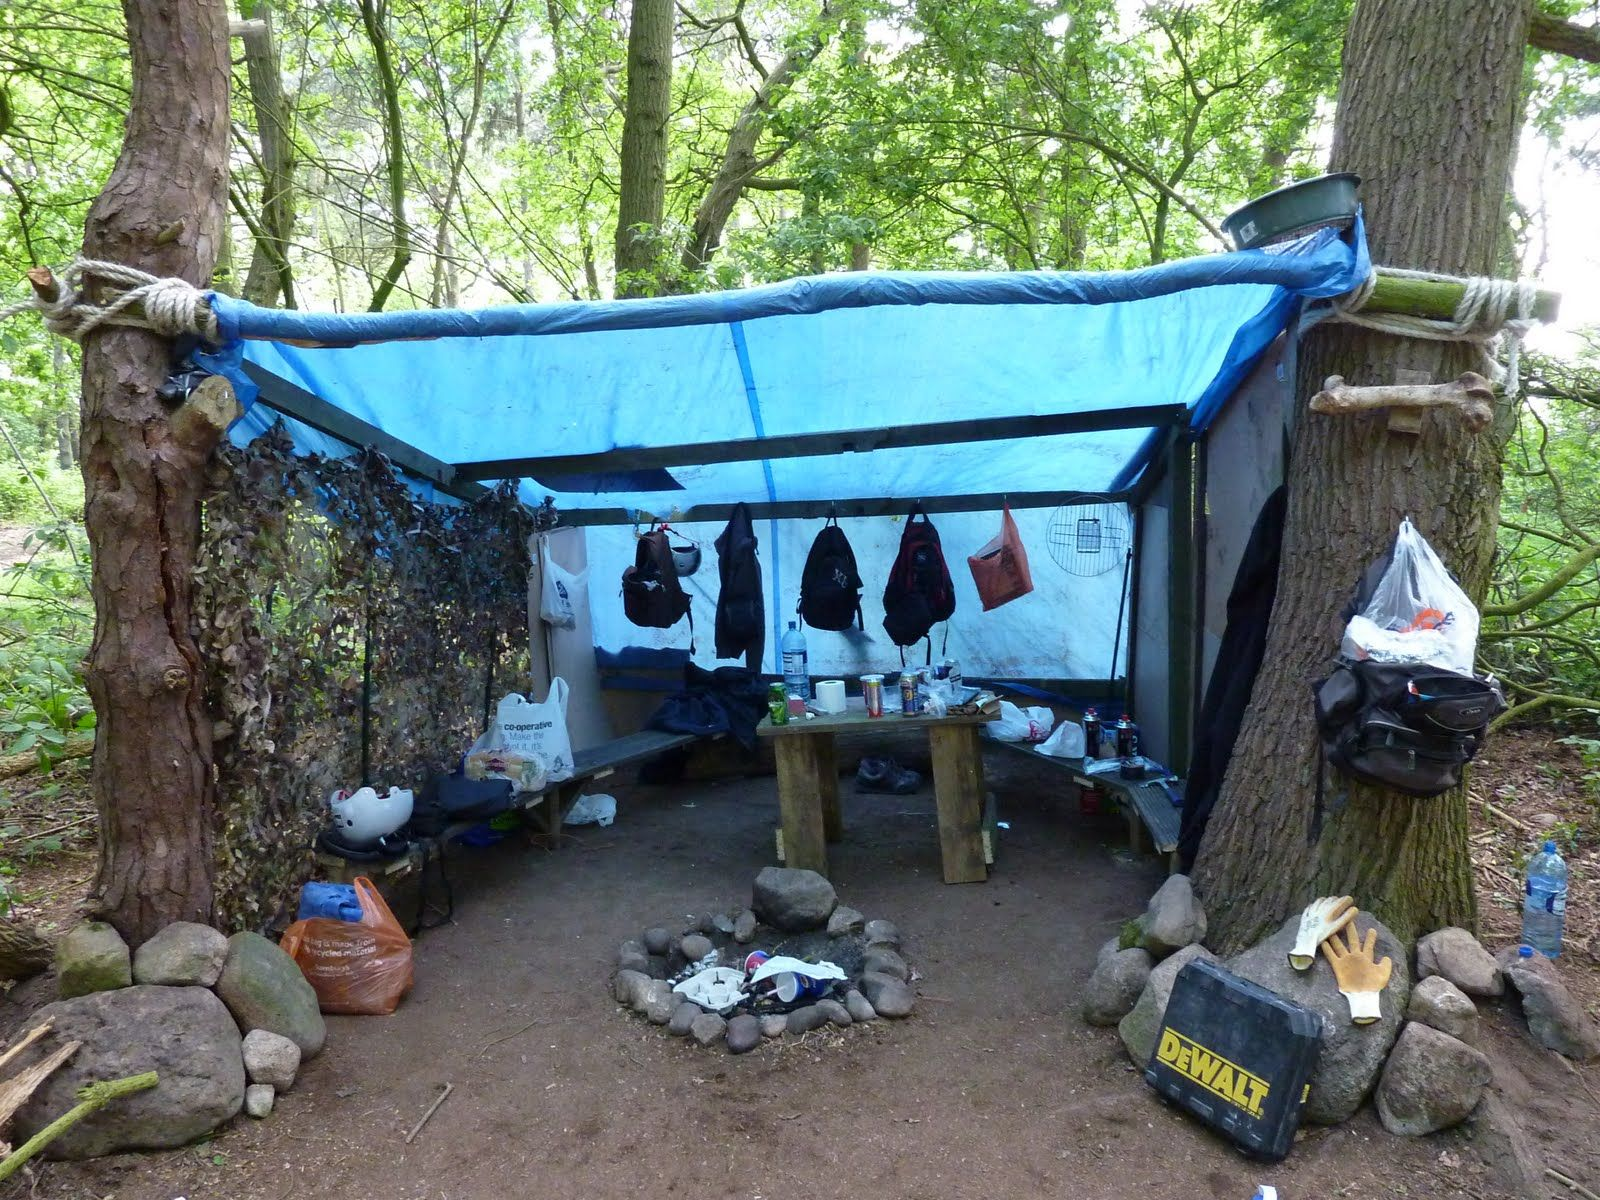 Building A Shelter In The Woods : Building shelter in woods survival